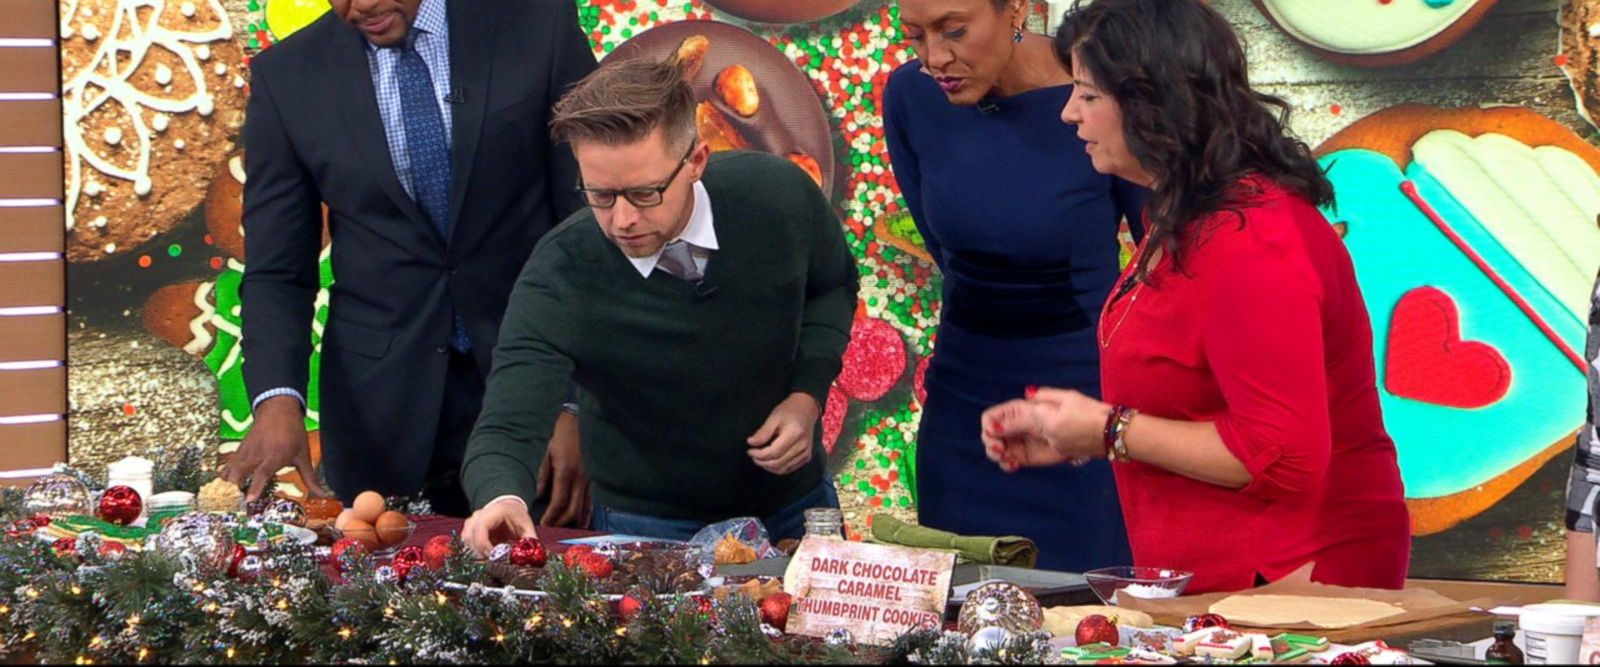 VIDEO: Christmas cookie baking tips from 'GMA' viewers